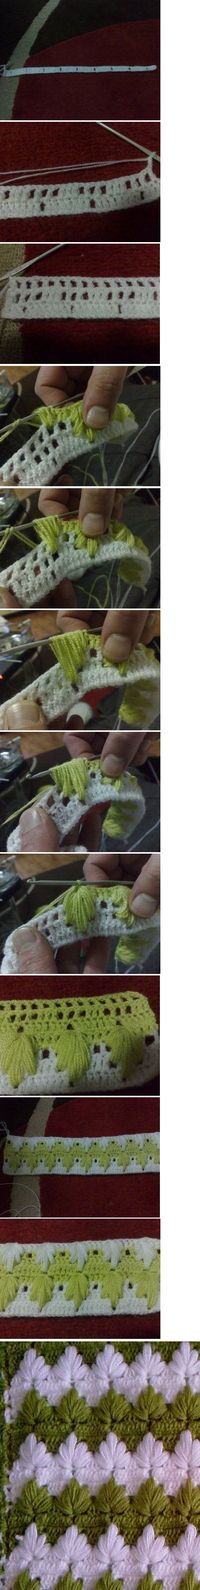 I don't remember the name of this crochet technique but all I need is the tutorial! ;-)